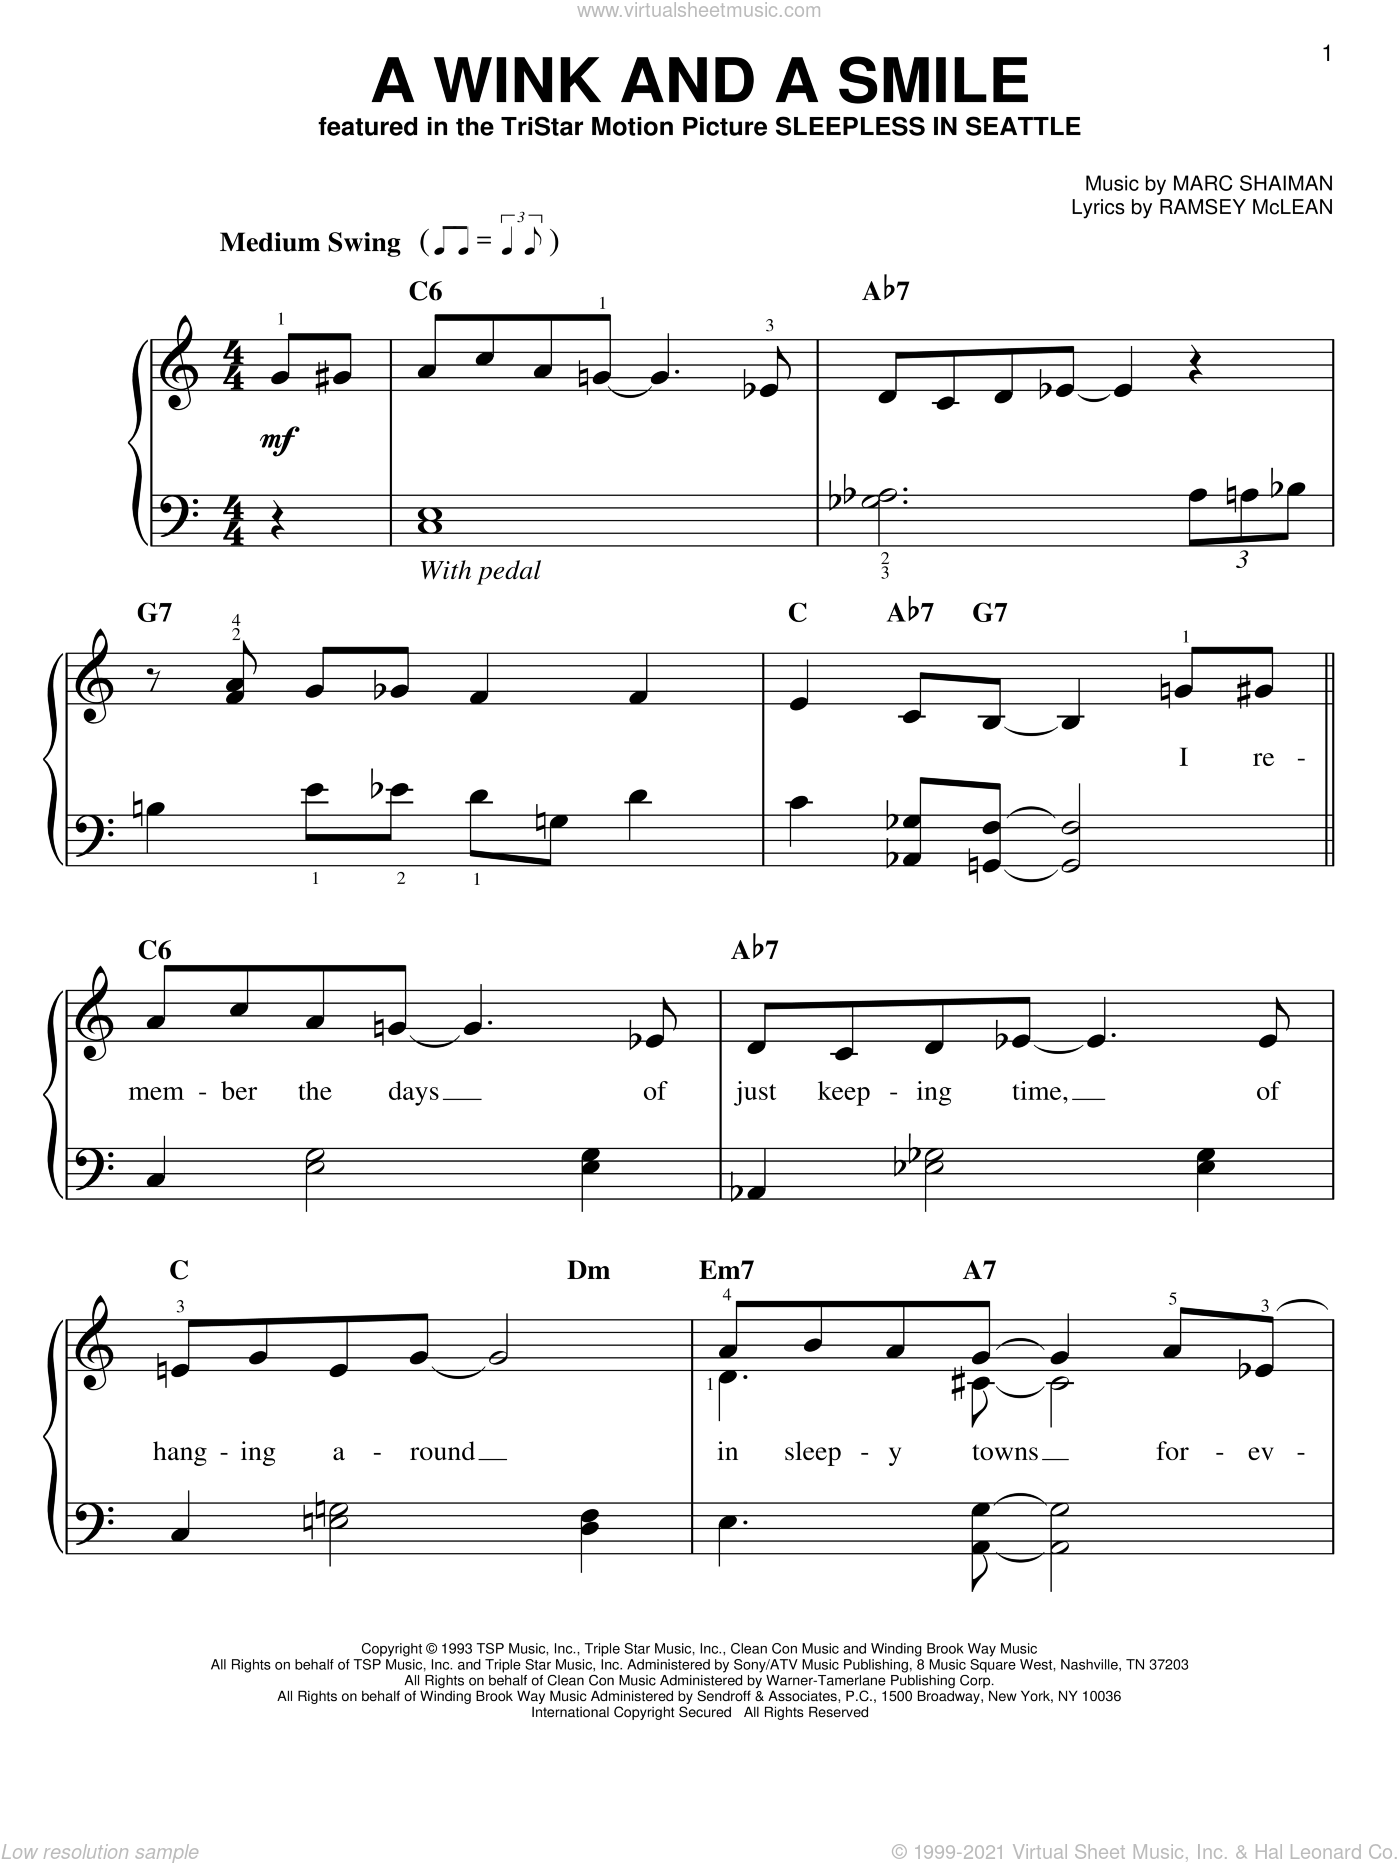 A Wink And A Smile sheet music for piano solo by Harry Connick Jr., Marc Shaiman and Ramsey McLean, wedding score, easy skill level